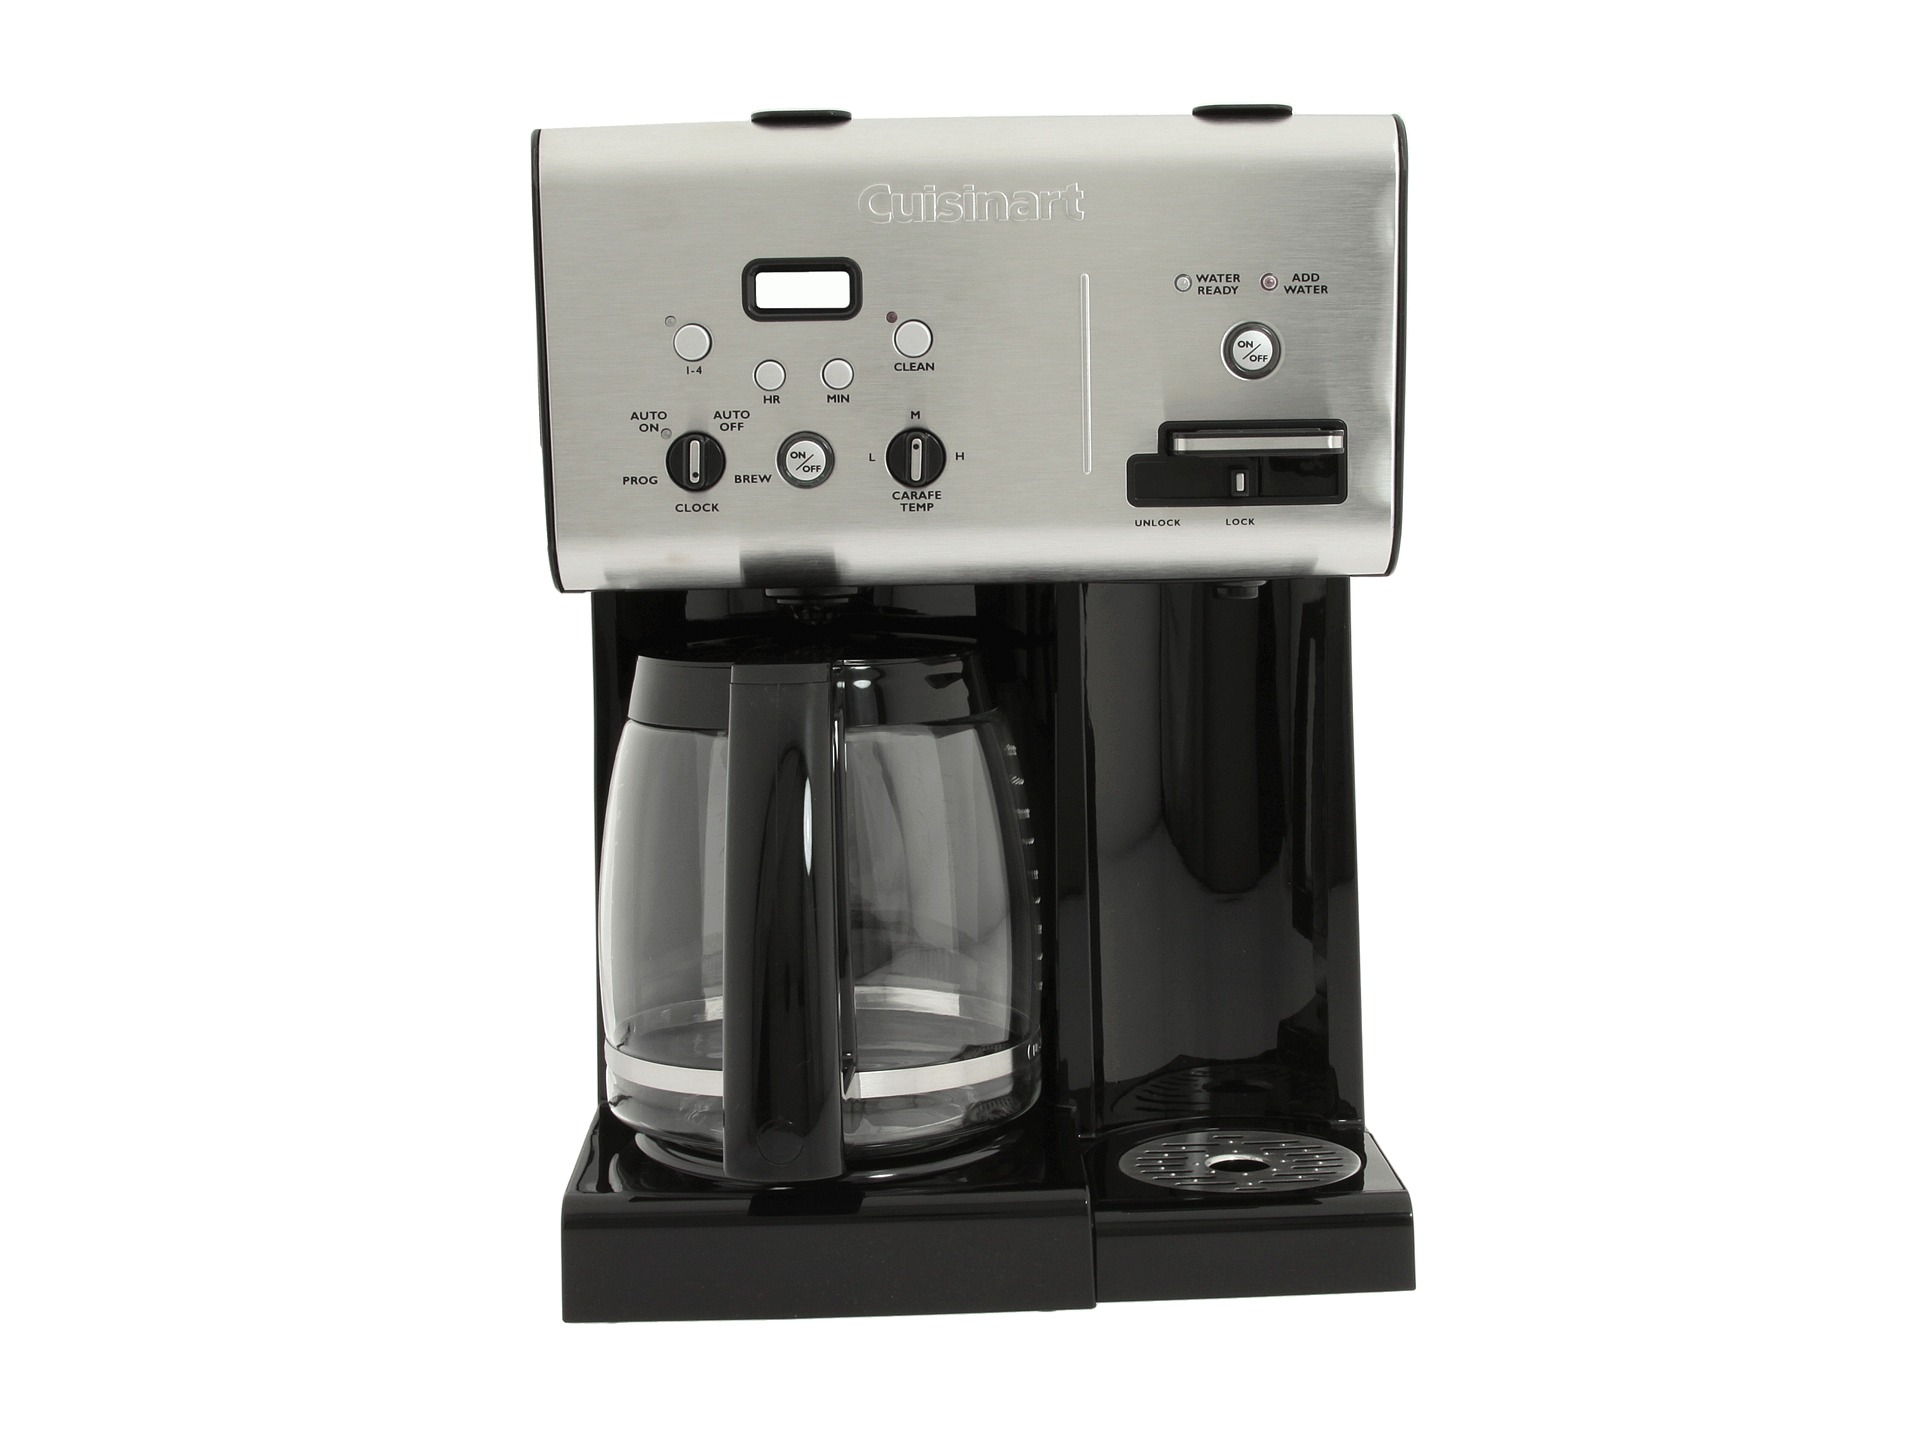 Cuisinart Coffee Maker Hot Water Dispenser : Cuisinart Chw 12 Coffee Plus 12 Cup Coffee Maker And Hot Water System Shipped Free at Zappos